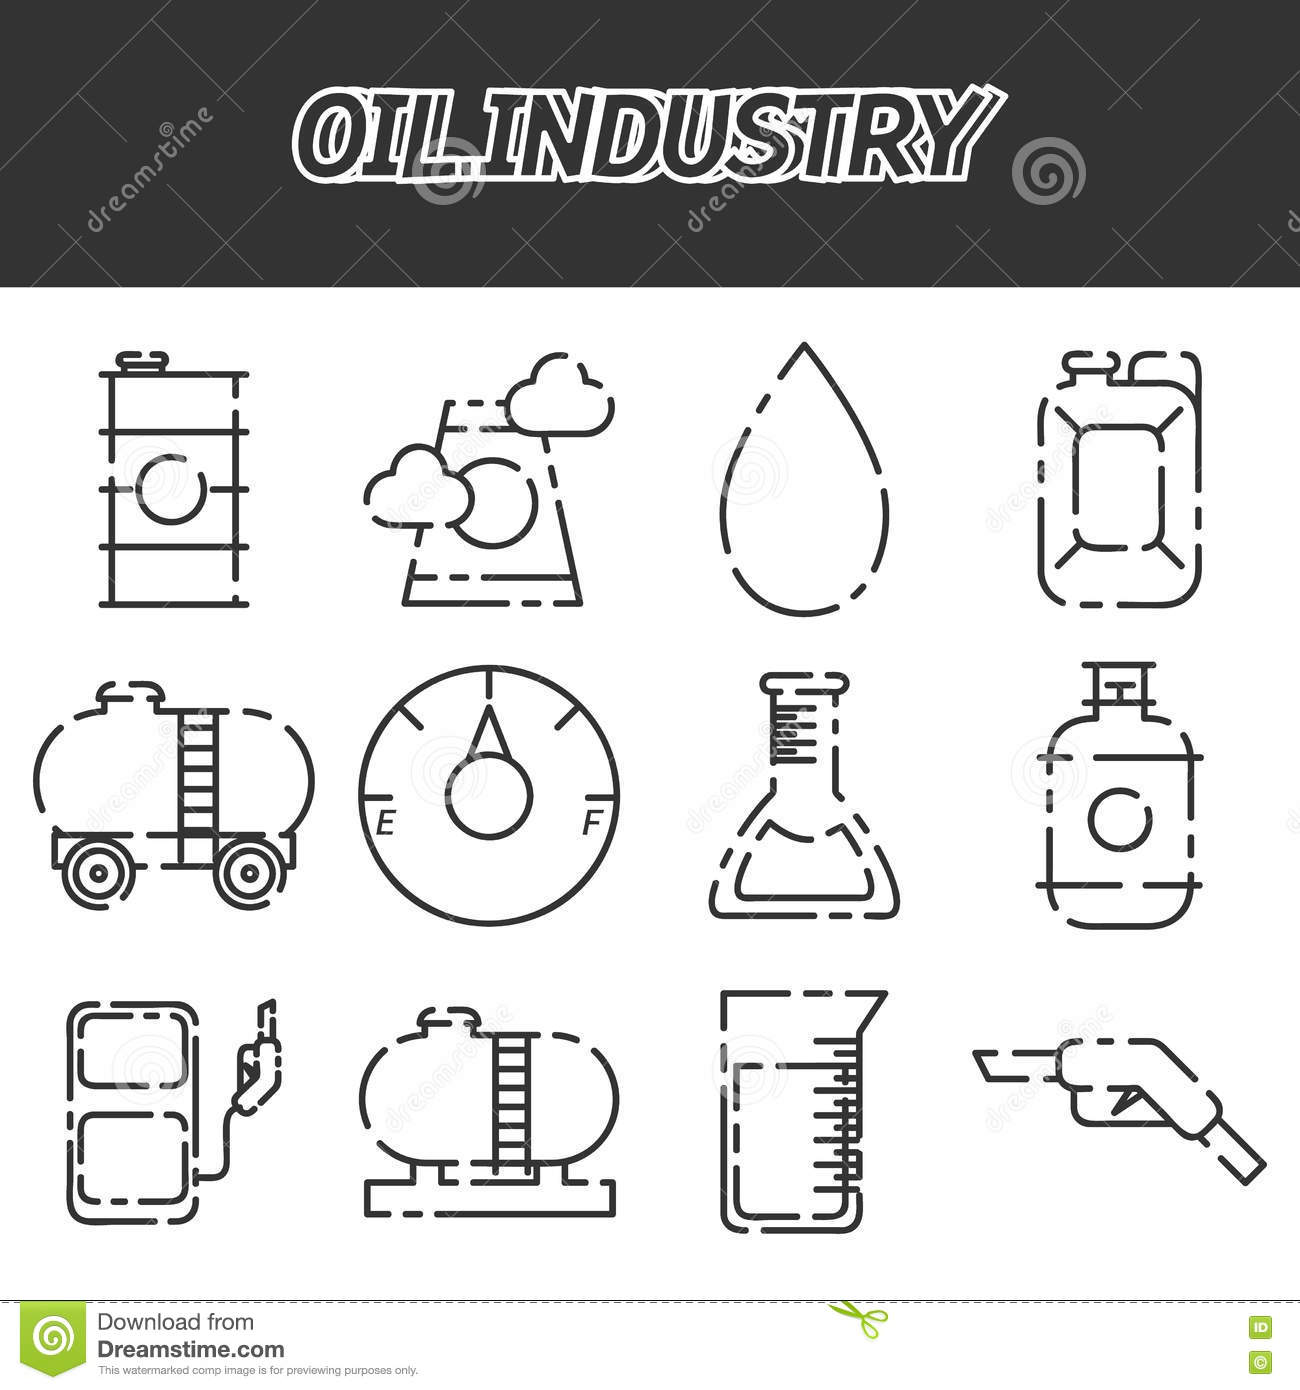 Stock Vector Circuit City likewise  in addition Derrick as well Sunglasses In Spanish further Cowboy Drawings Clip Art30rcrgixti. on refinery outline